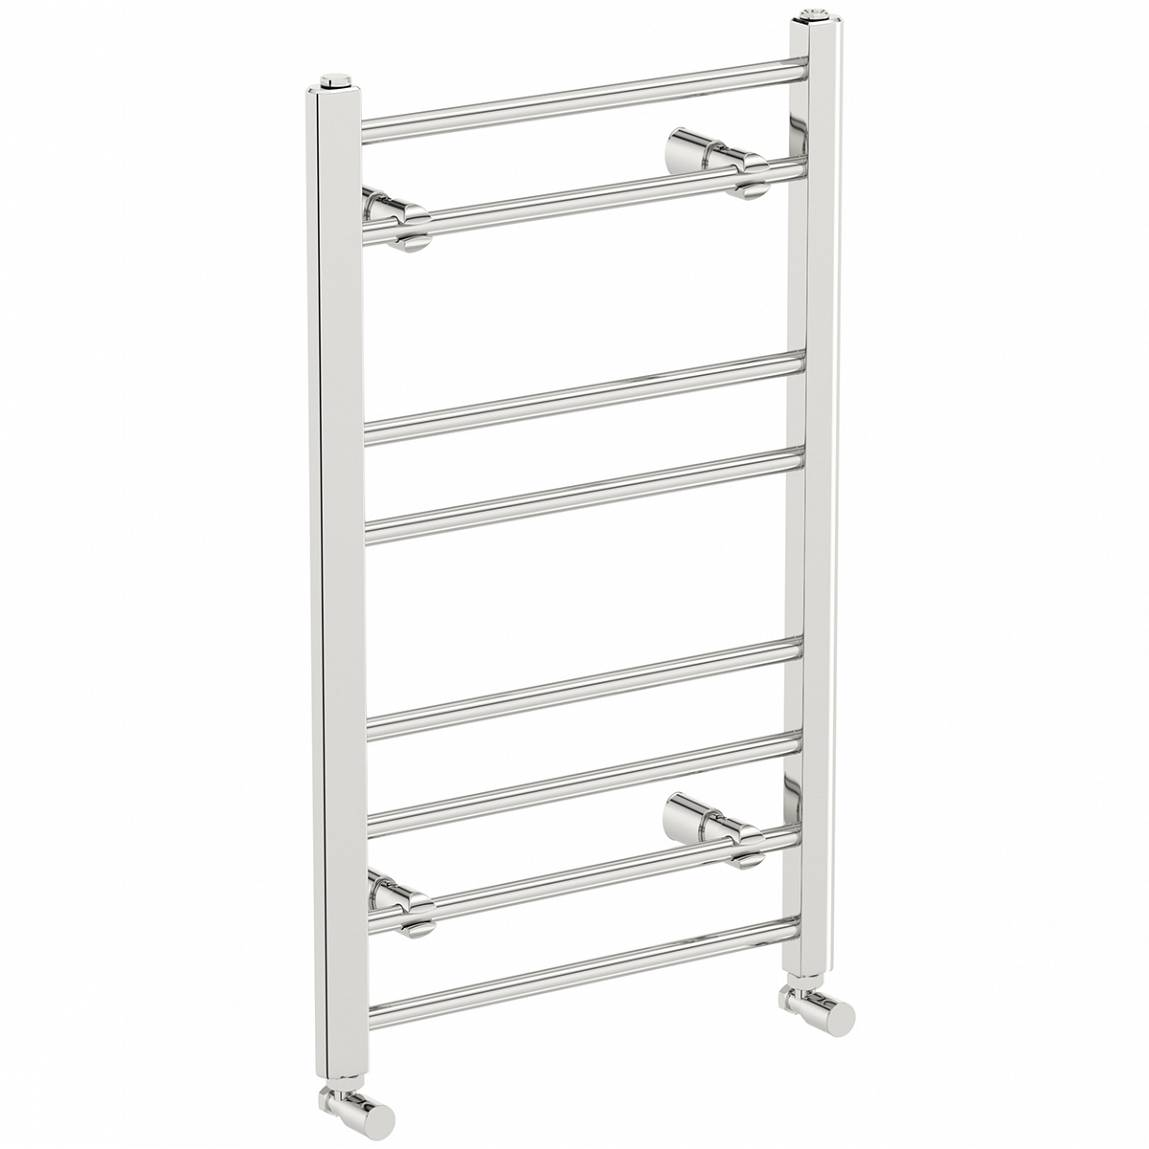 Image of Eco Heated Towel Rail 800 X 500